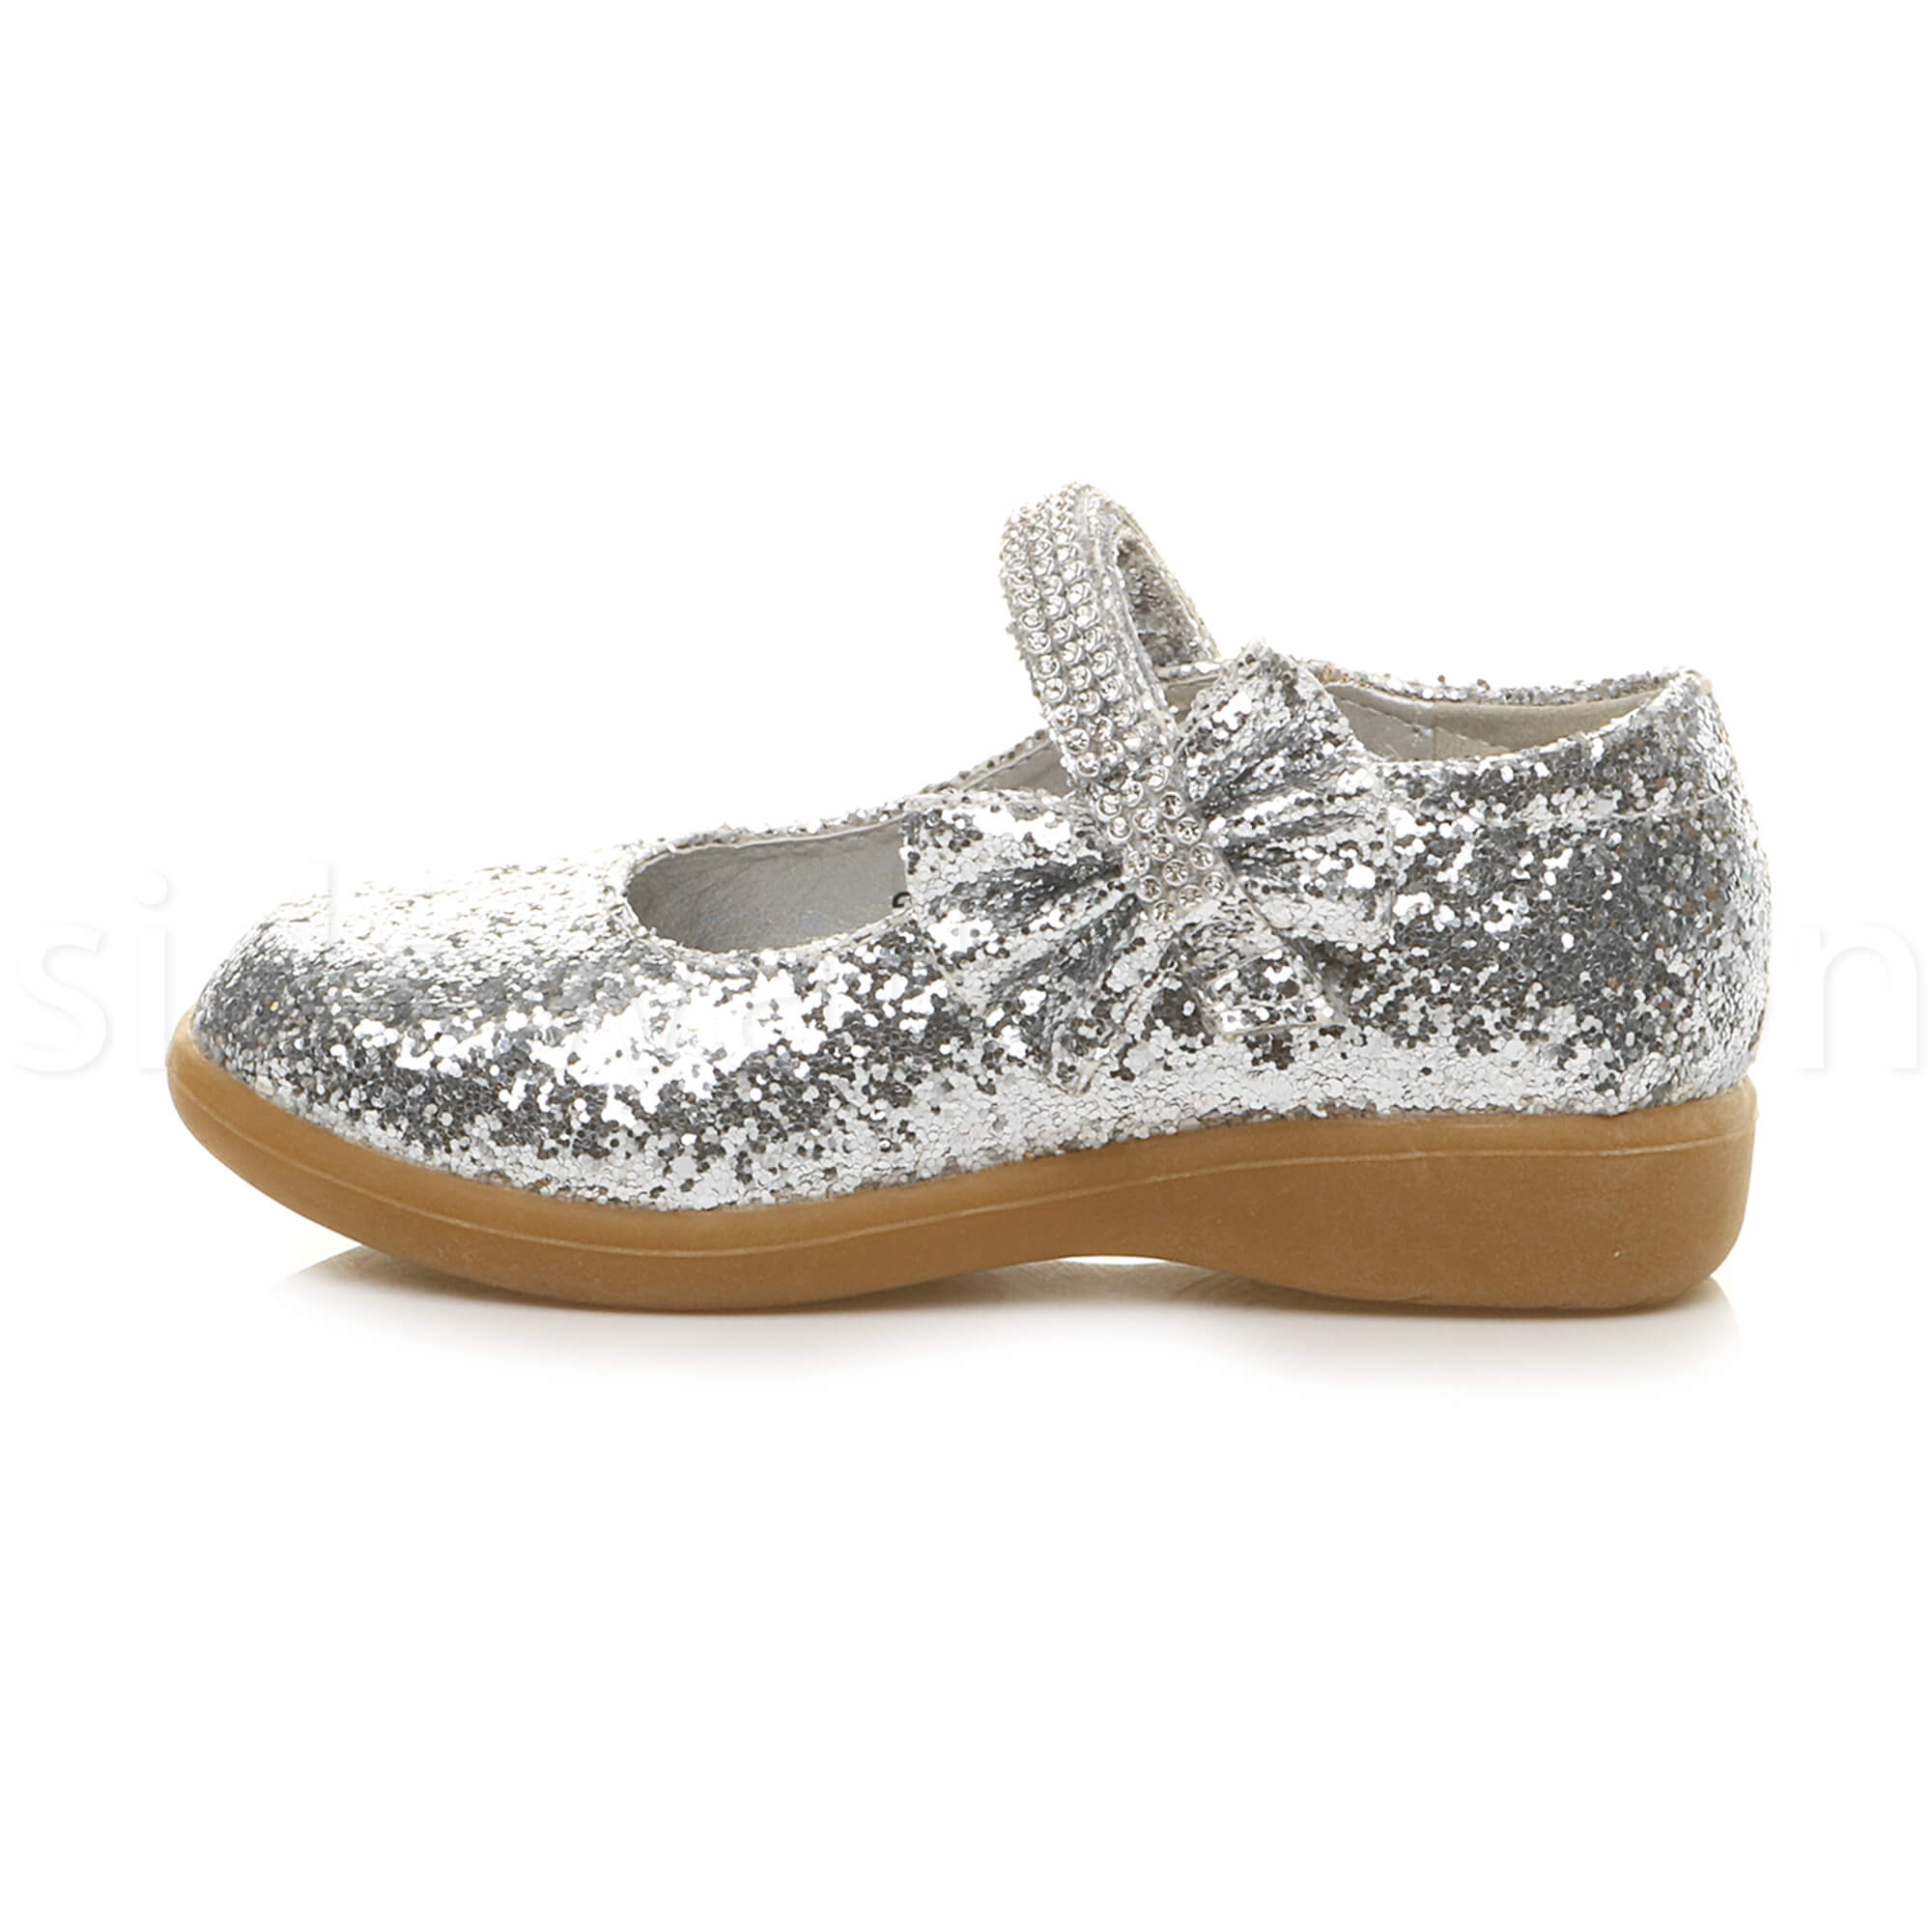 1dec2dd5bbb5 Girls Silver Sparkly Party Shoes (size 11 Kids) for sale online